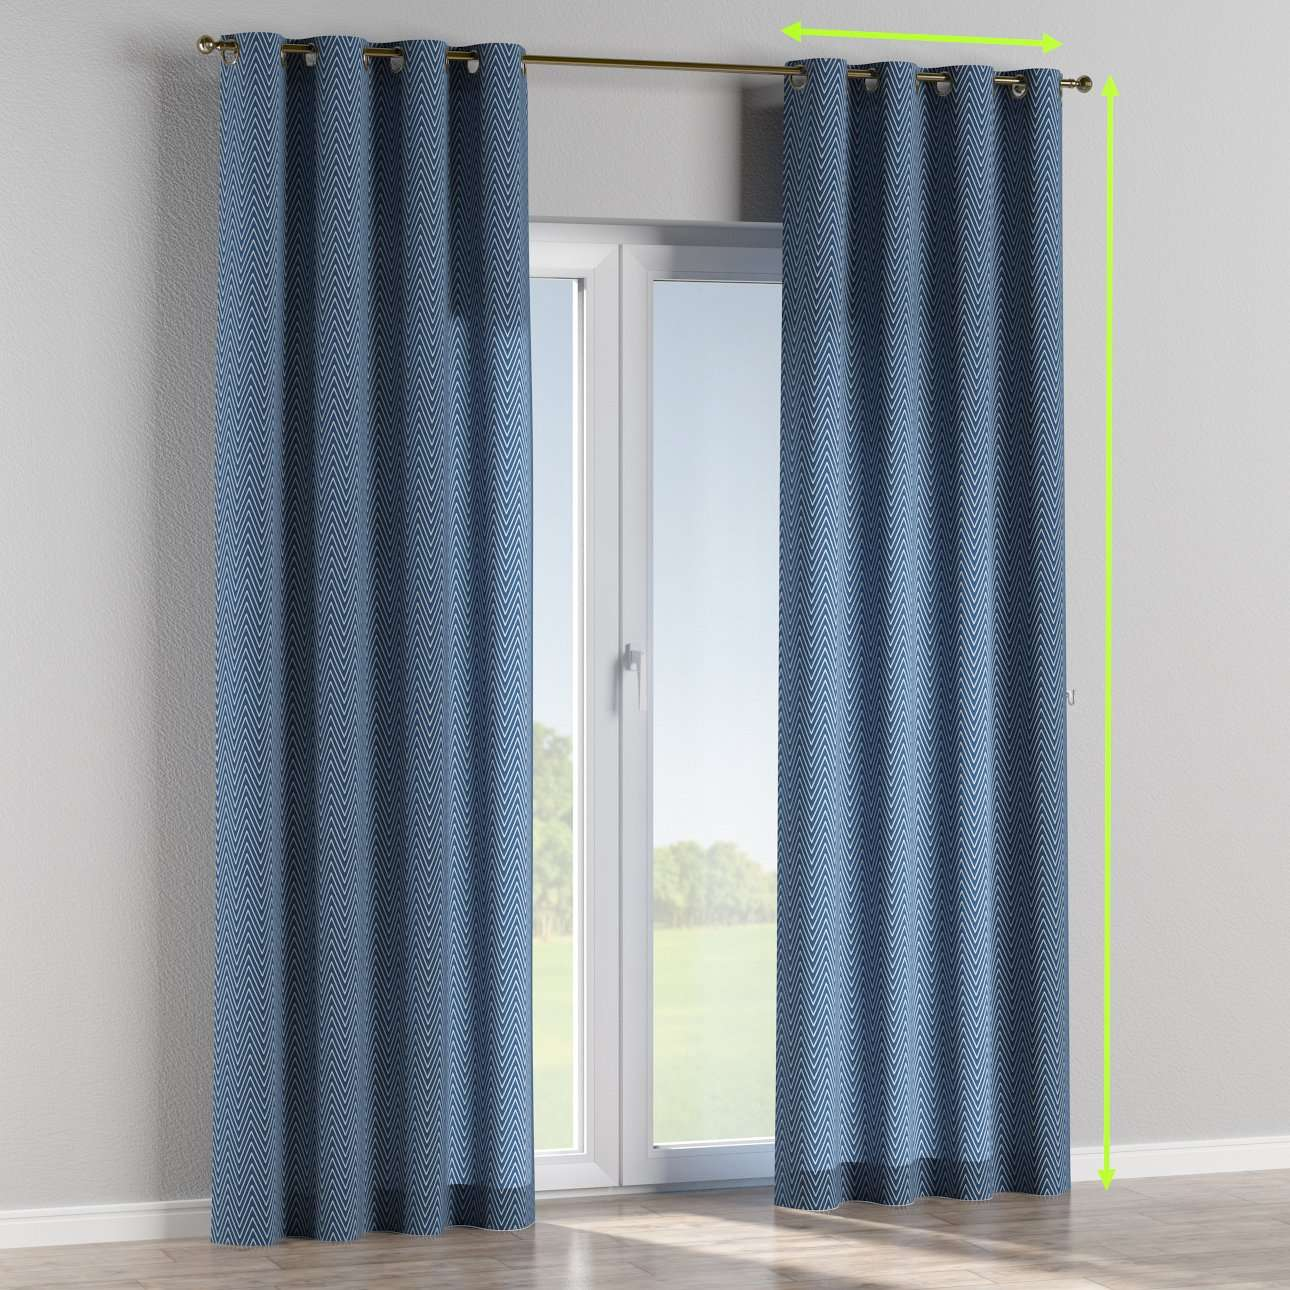 Eyelet lined curtains in collection Brooklyn, fabric: 137-88